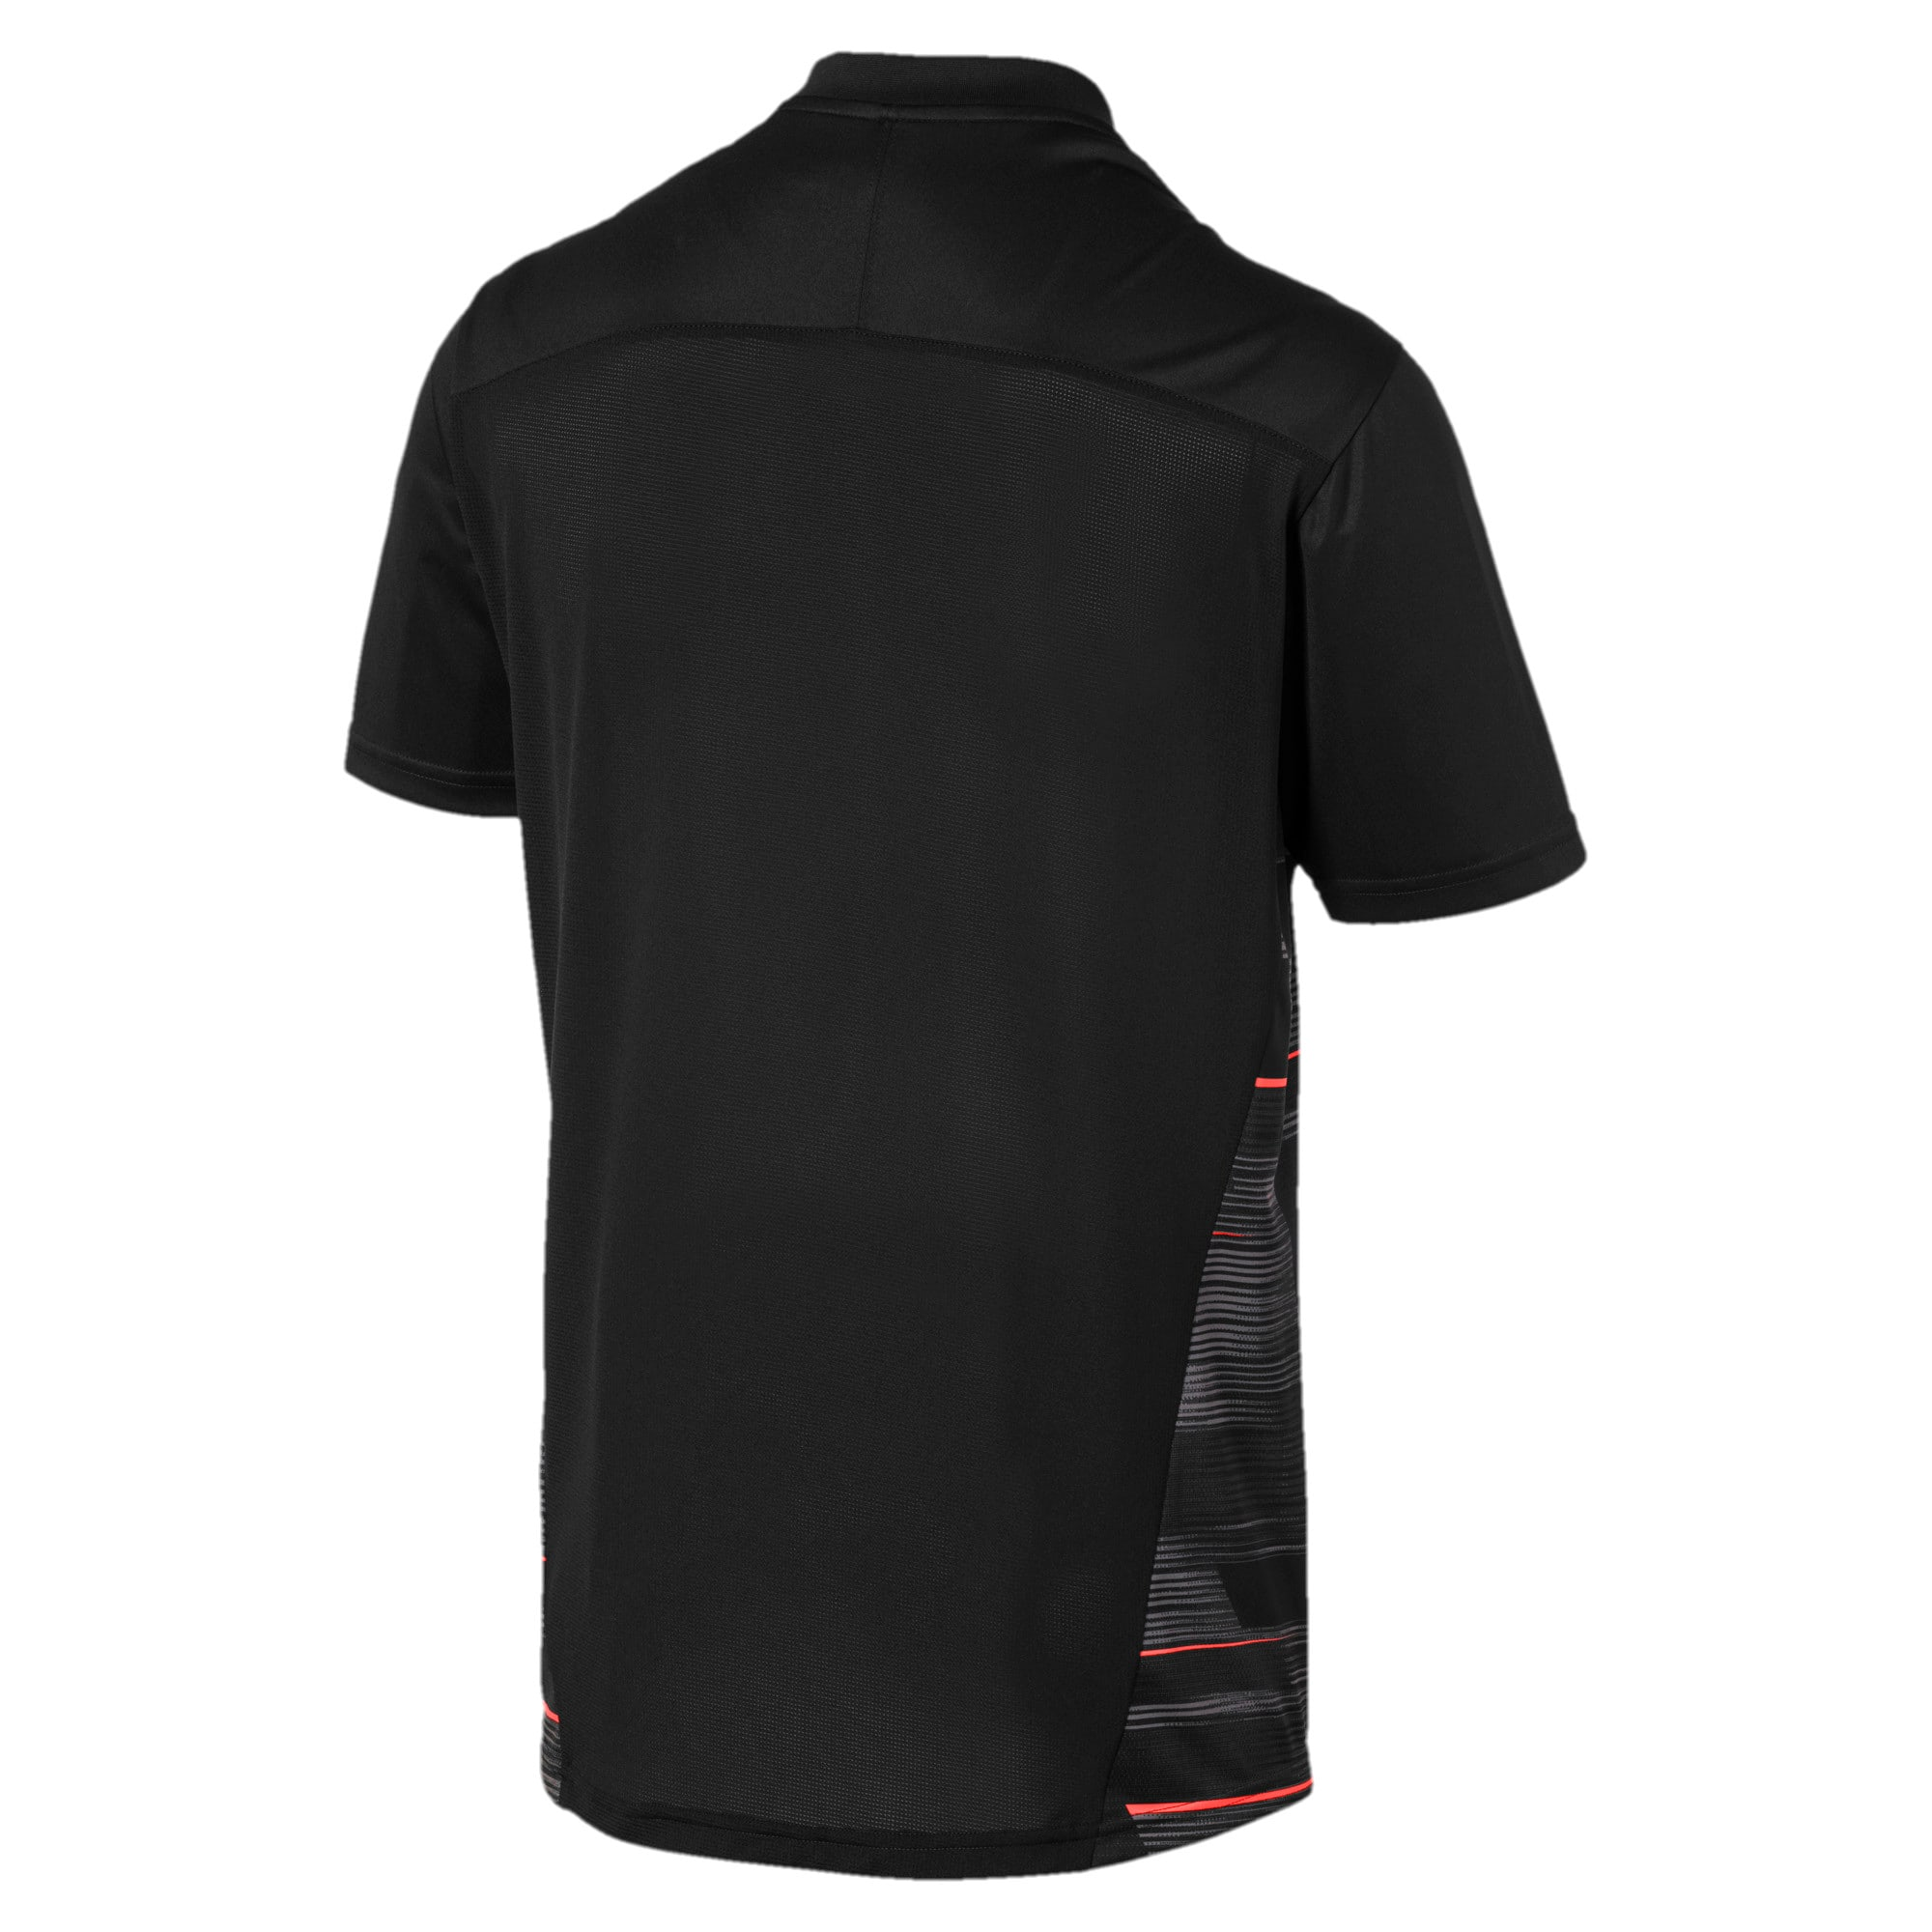 Thumbnail 5 of Graphic Herren T-Shirt, Puma Black-Nrgy Red, medium